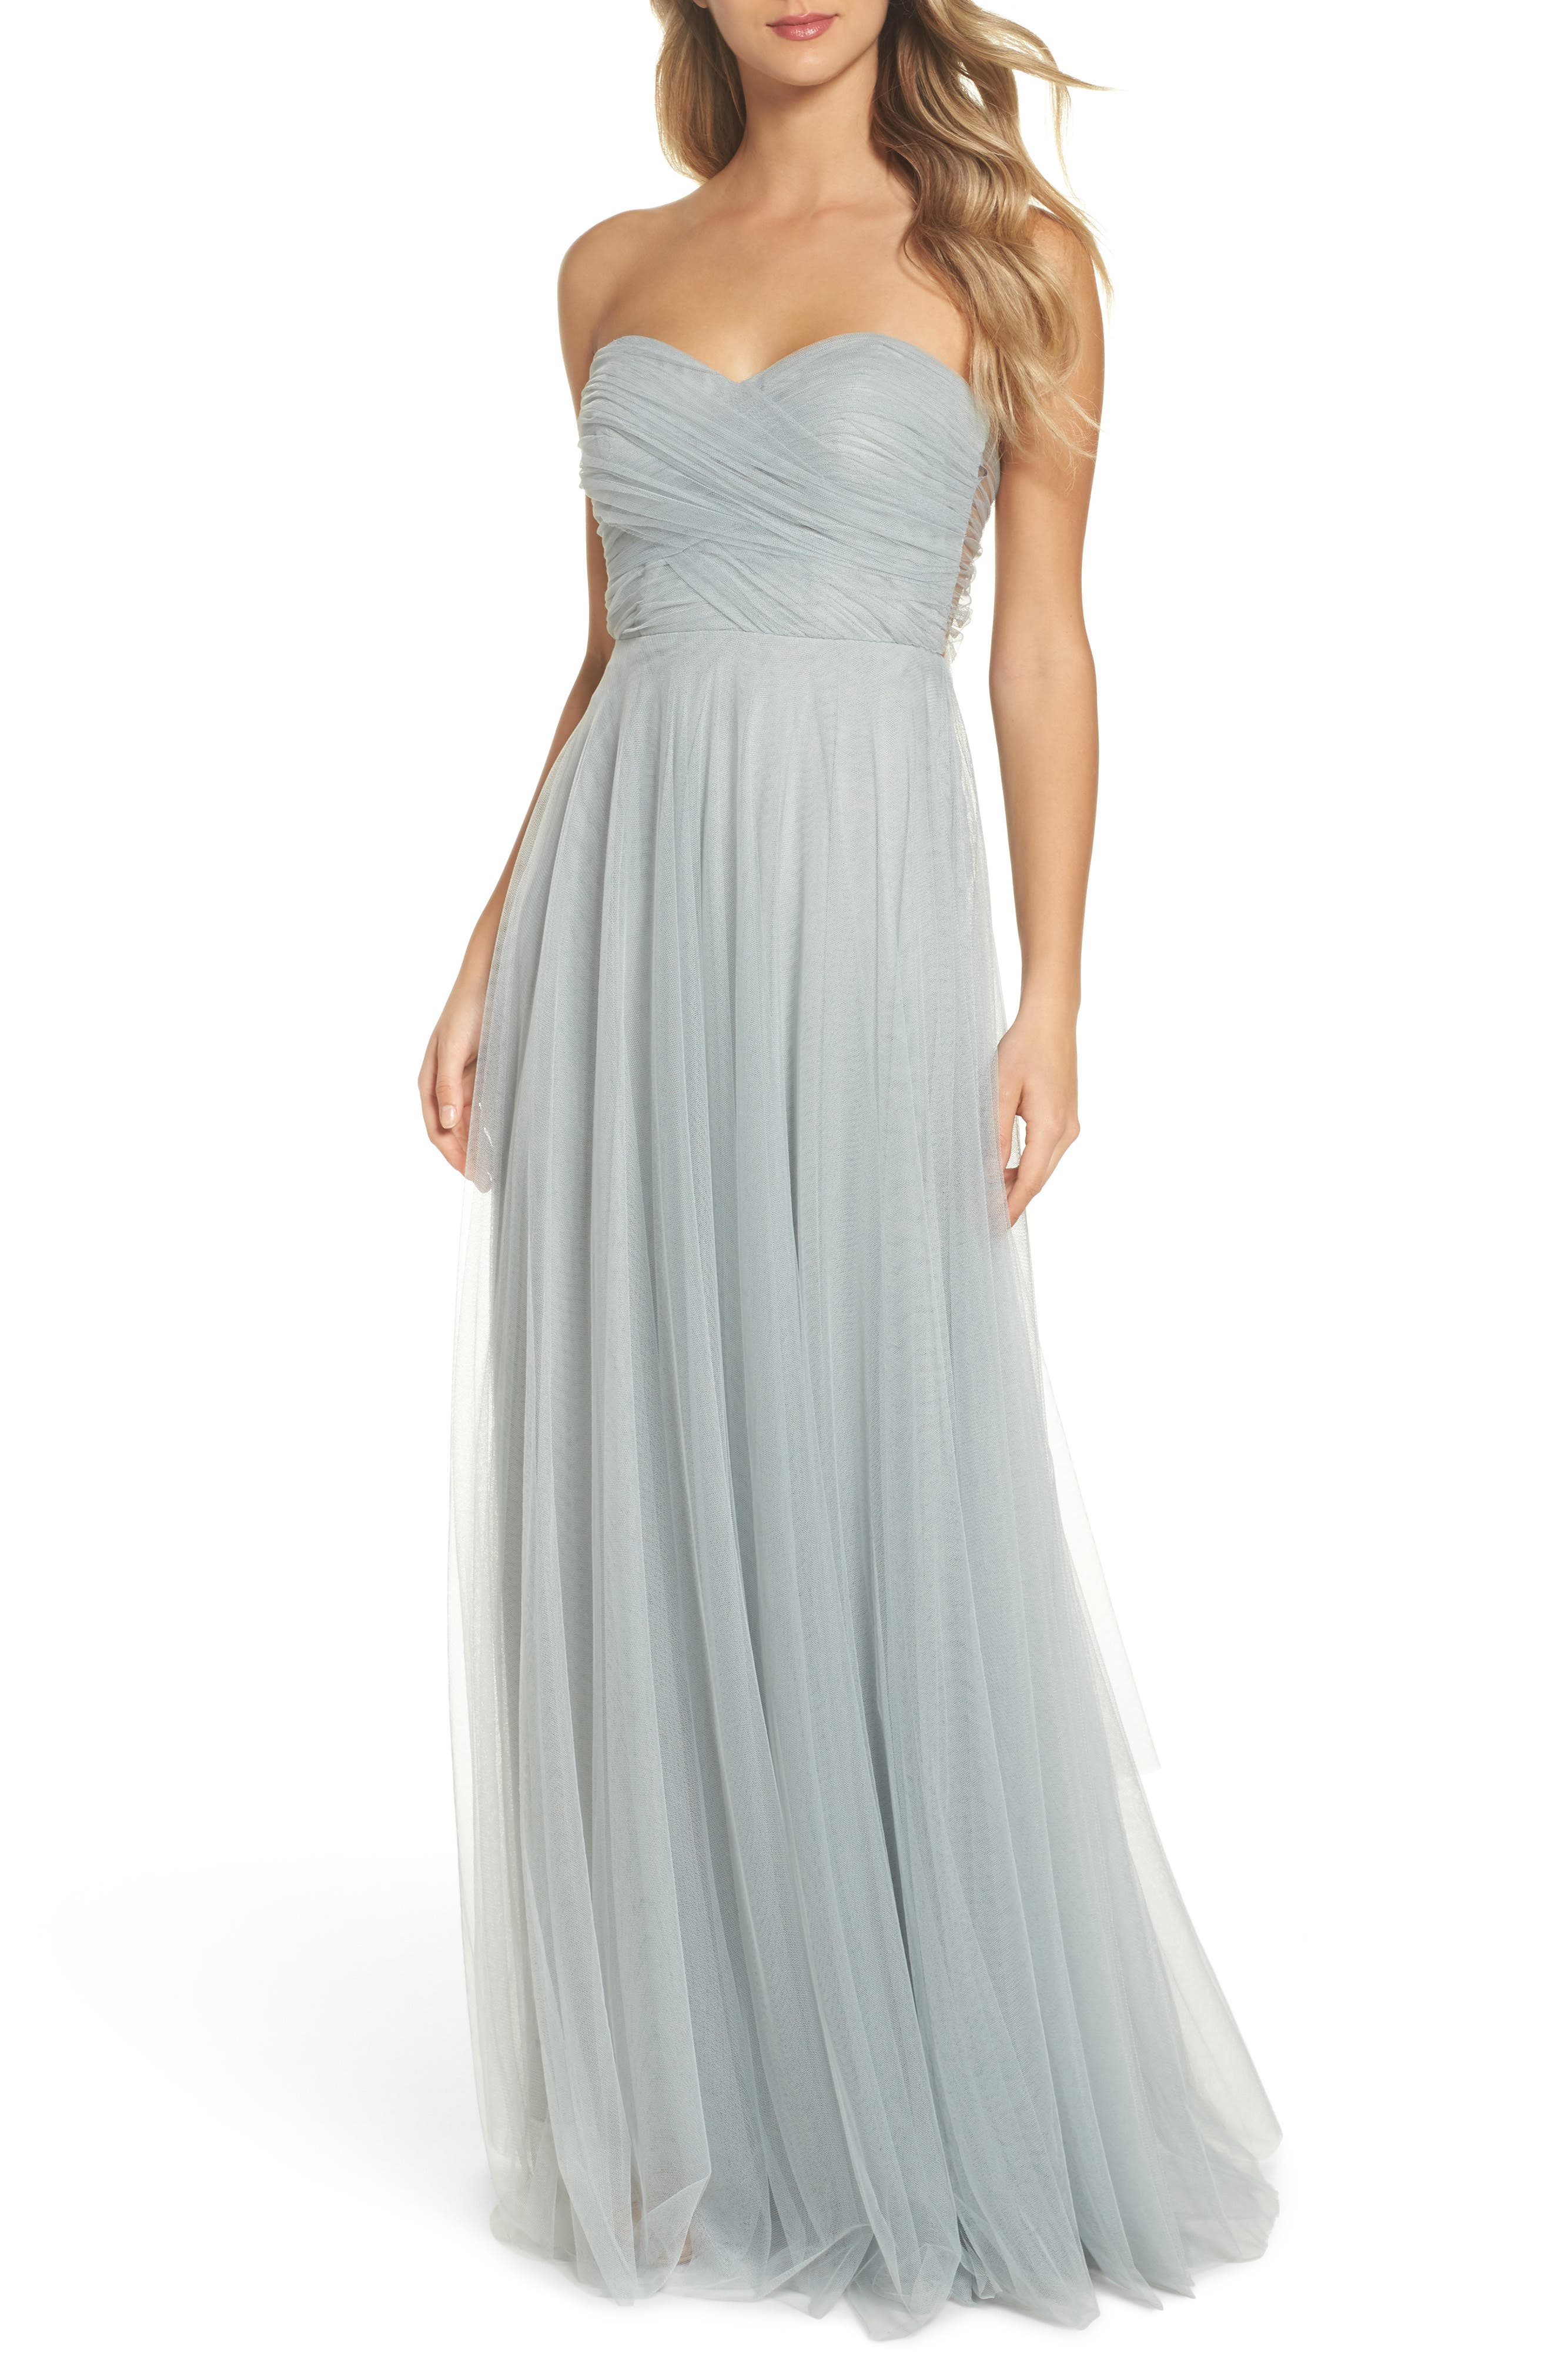 Julia Convertible Soft Tulle Gown,                             Main thumbnail 1, color,                             MORNING MIST